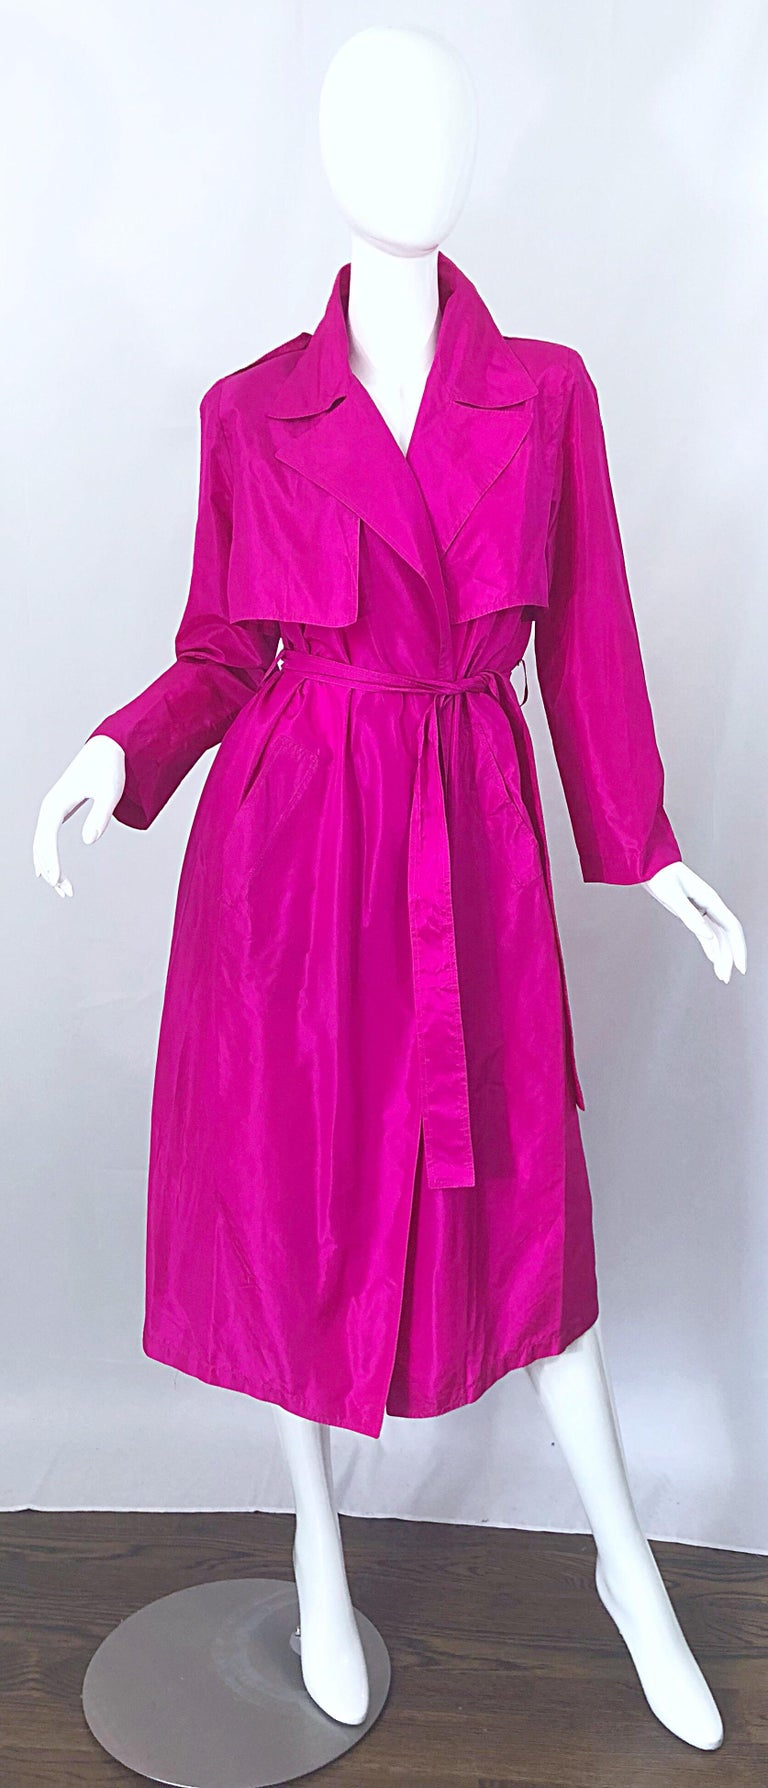 Amazing 1980s VICKY TIEL COUTURE hot pink / fuchsia lightweight silk trench jacket dress! One of the many things that I love about this rare gem is that it can double up as a jacket OR a dress! Exaggerated collar and lapels, with pockets at each